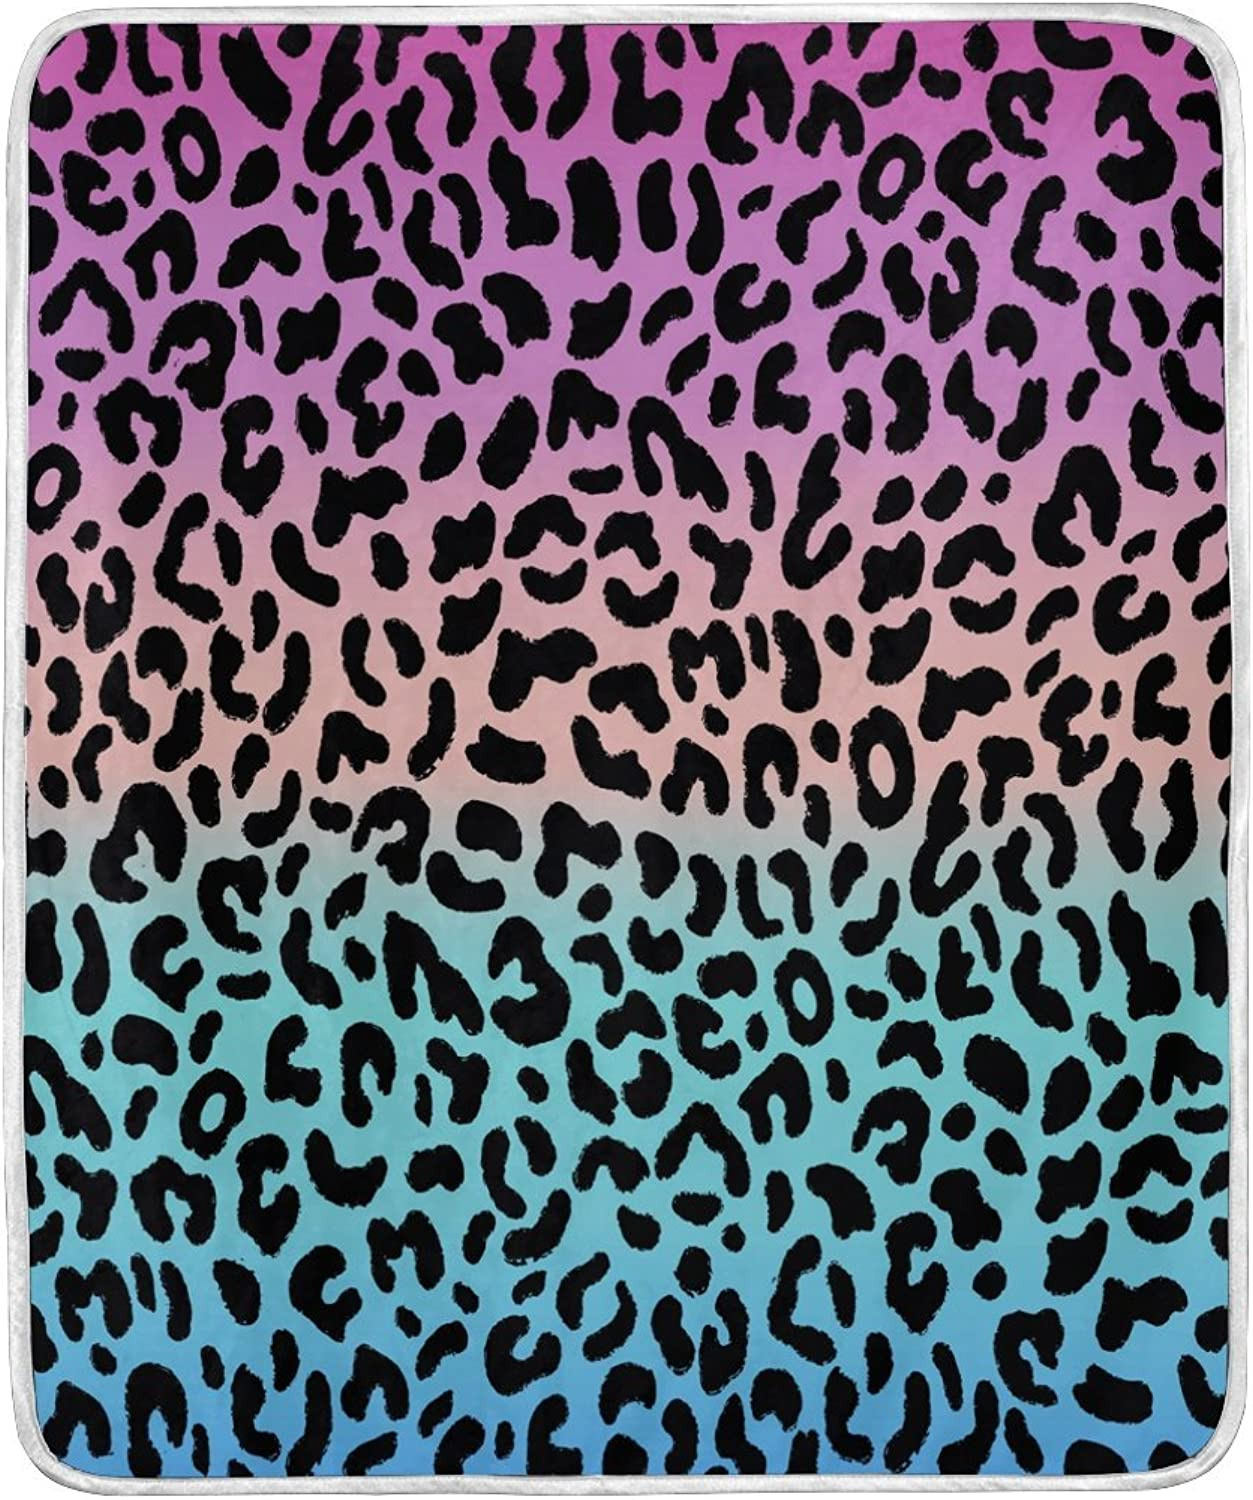 ALAZA Home Decor Cartoon Leopard Print Blanket Soft Warm Blankets for Bed Couch Sofa Lightweight Travelling Camping 60 x 50 Inch Throw Size for Kids Boys Women